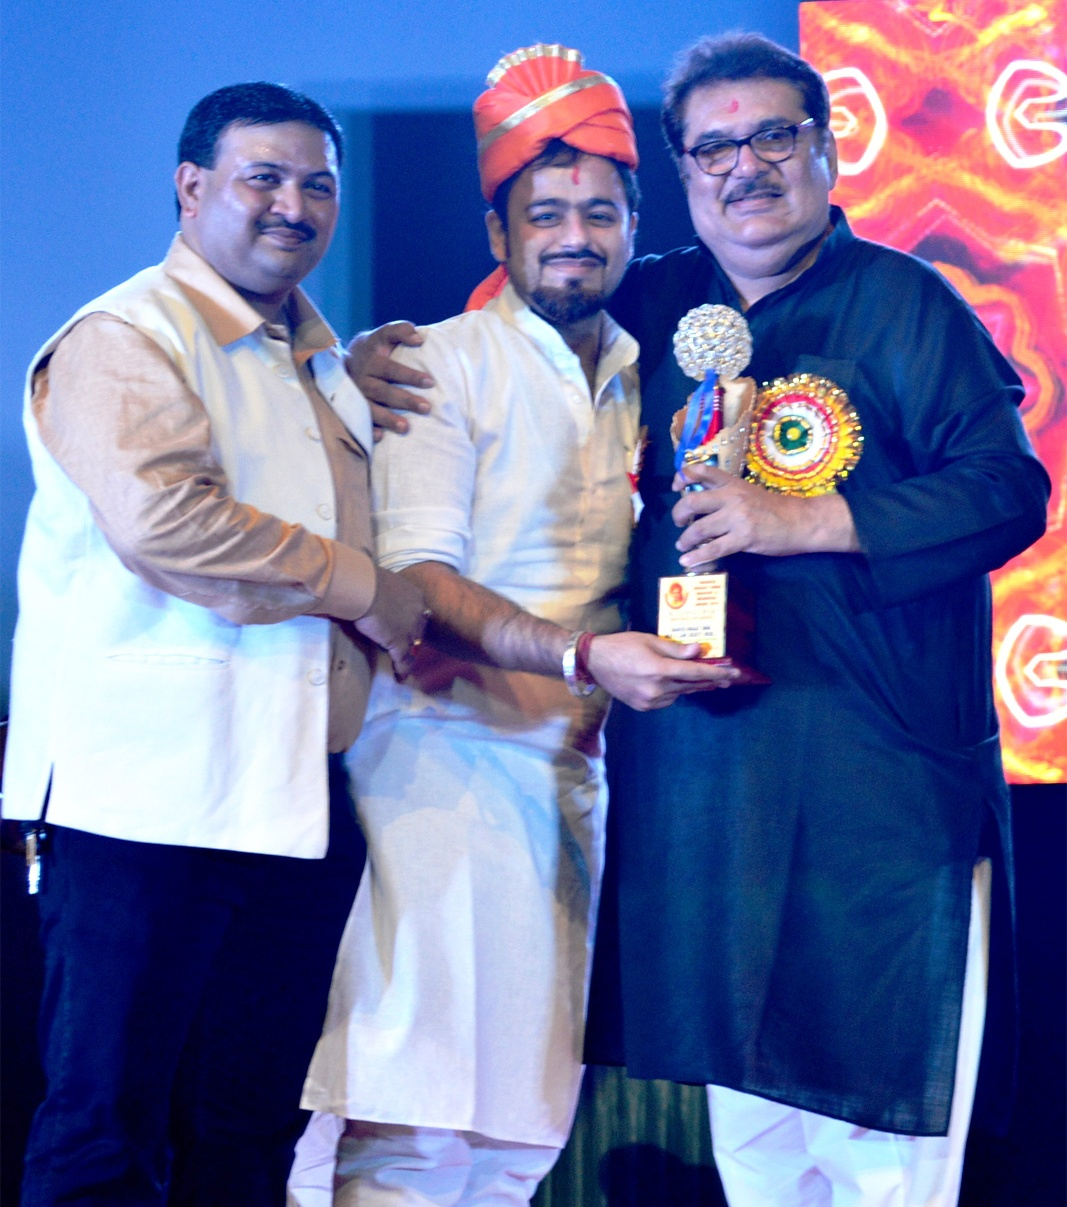 RECEIVED THE HONOR OF SHAHEED BHAGAT SINGH BRAVERY AWARD